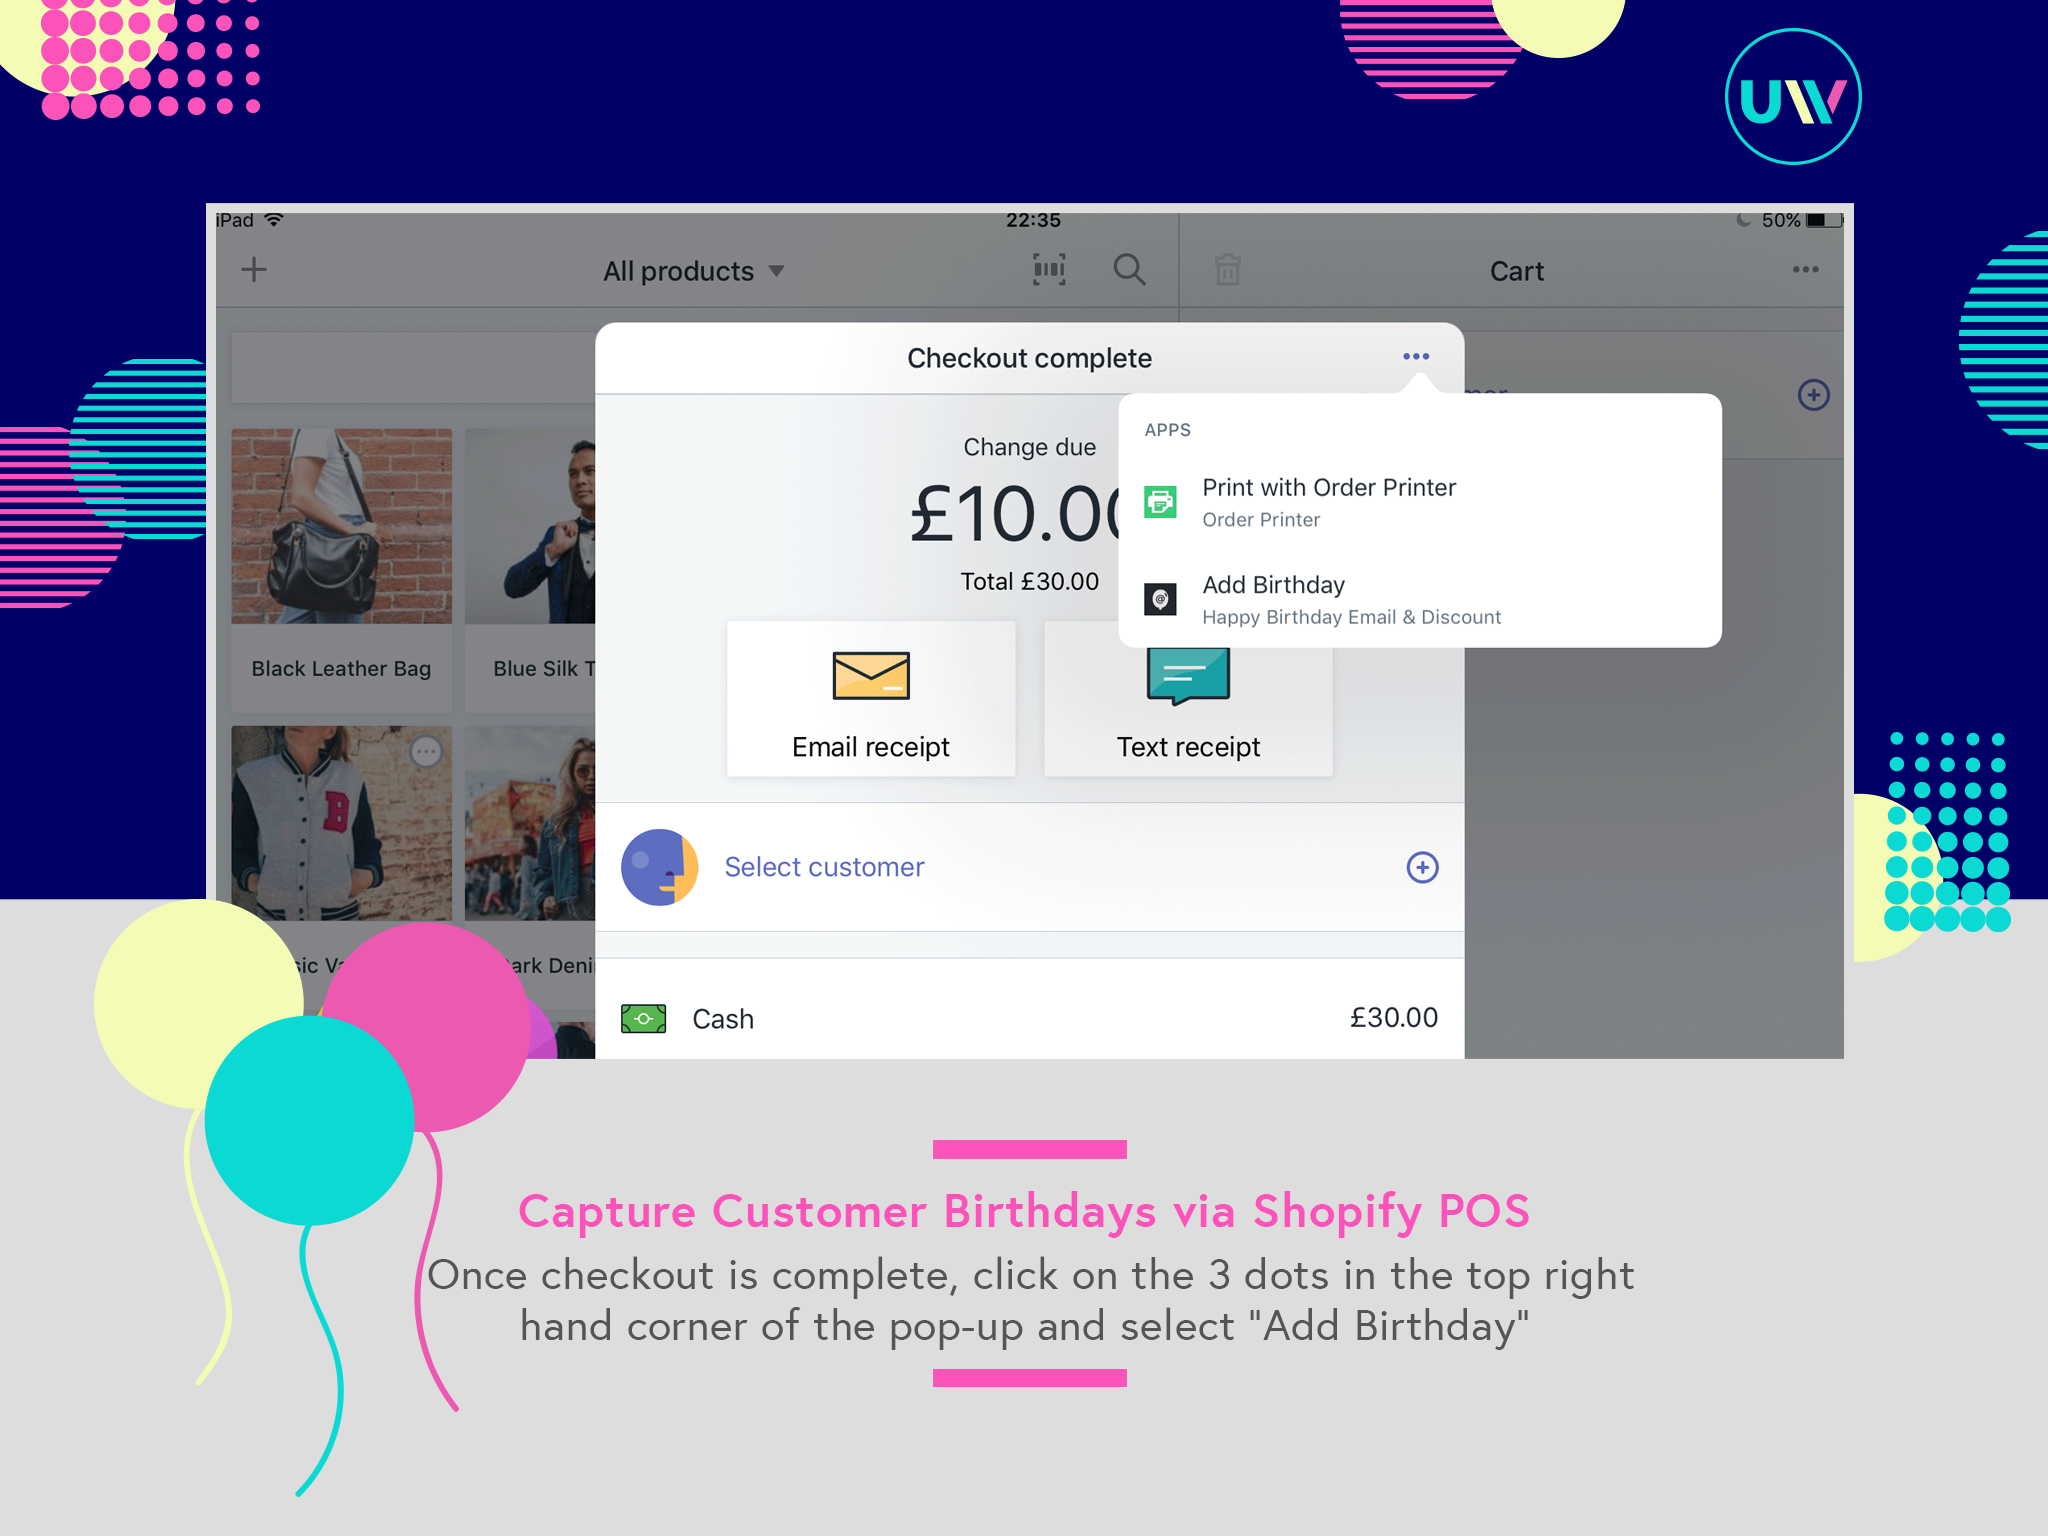 Add the Customer's Birthday once checkout is complete